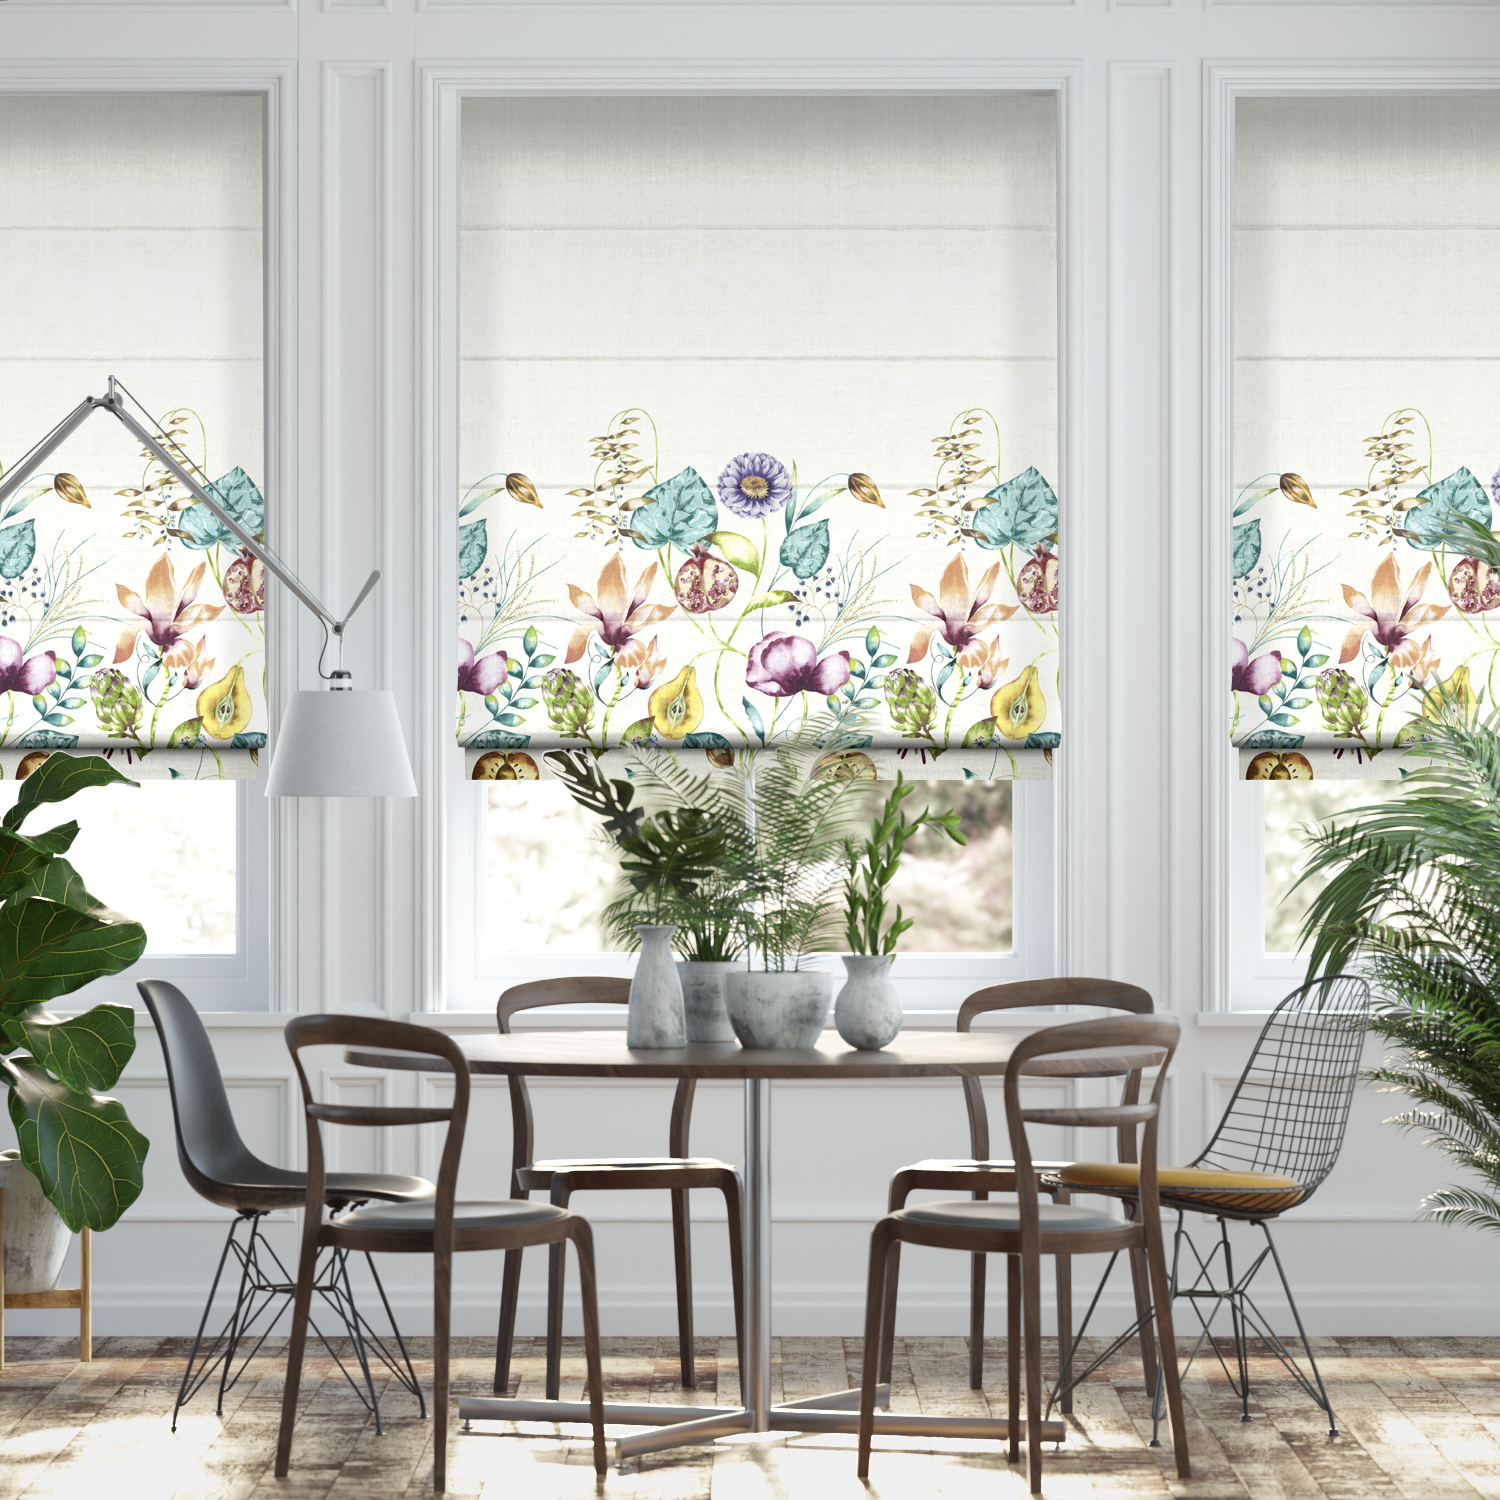 Wondrous Press Loft Beautiful Border Prints For Sublime Windows Bralicious Painted Fabric Chair Ideas Braliciousco